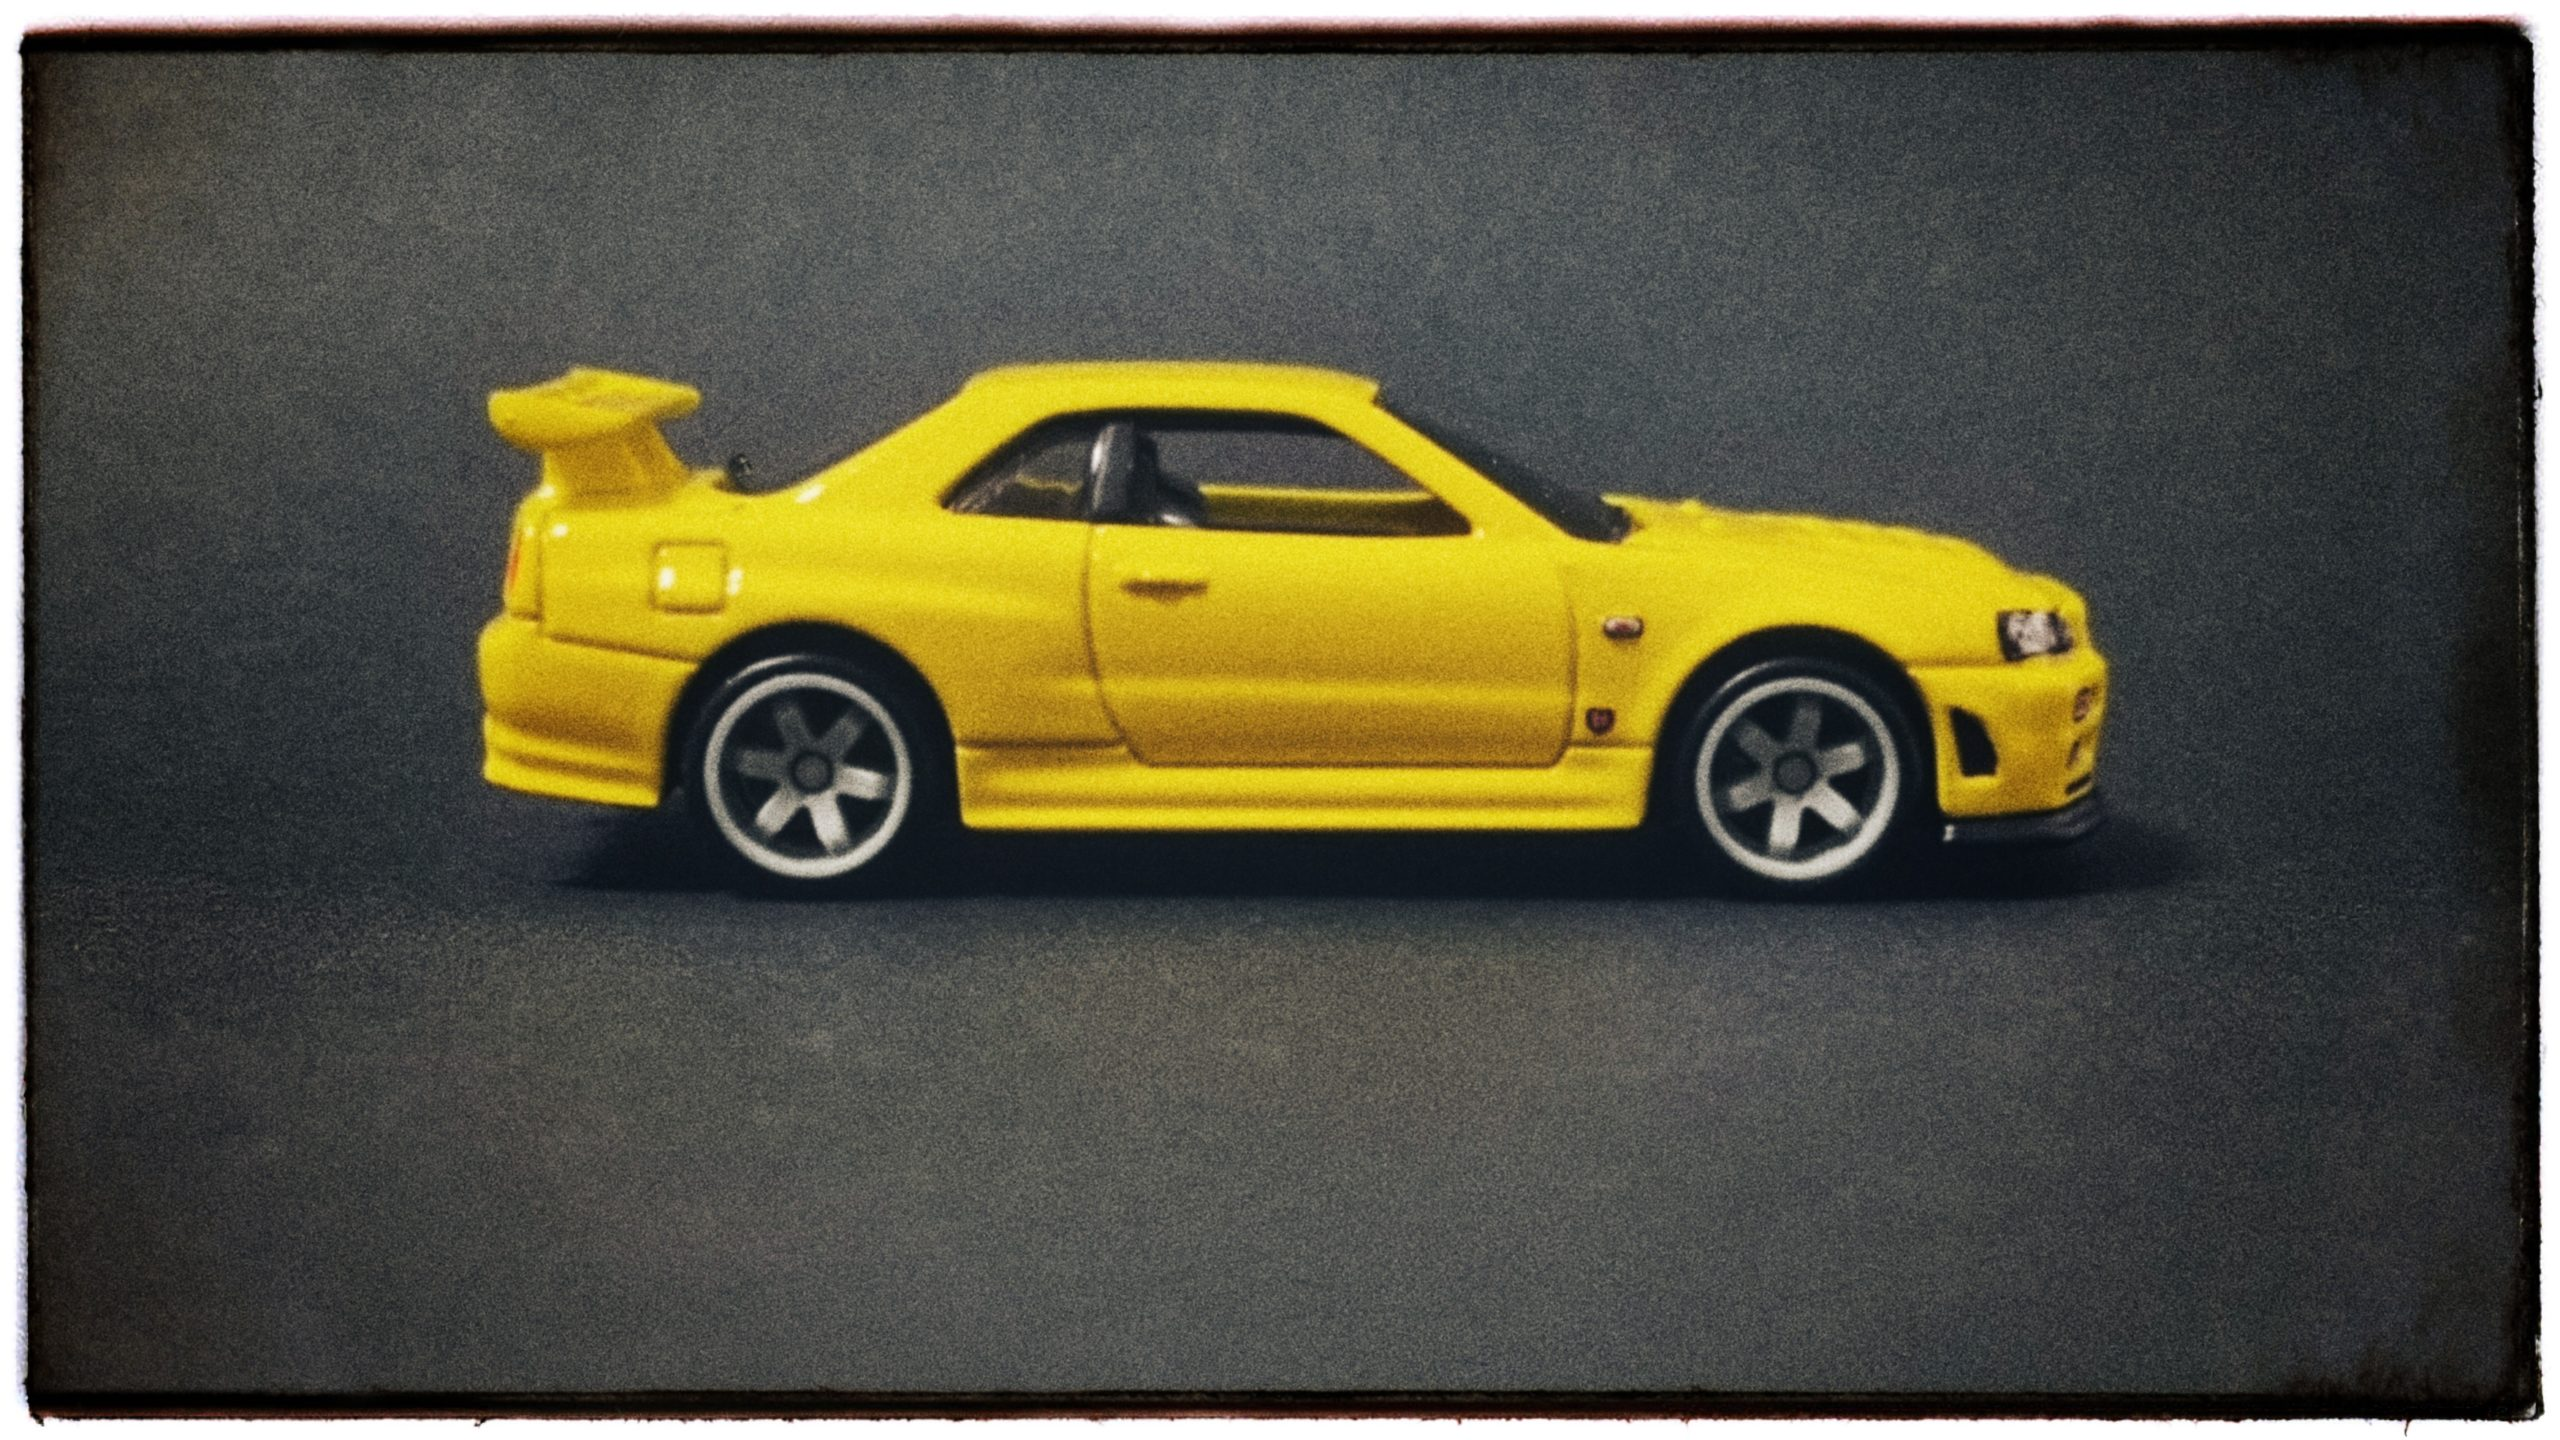 Hot Wheels 33rd Annual Collectors Convention Nissan Skyline GT-R (R34) 2019 yellow side